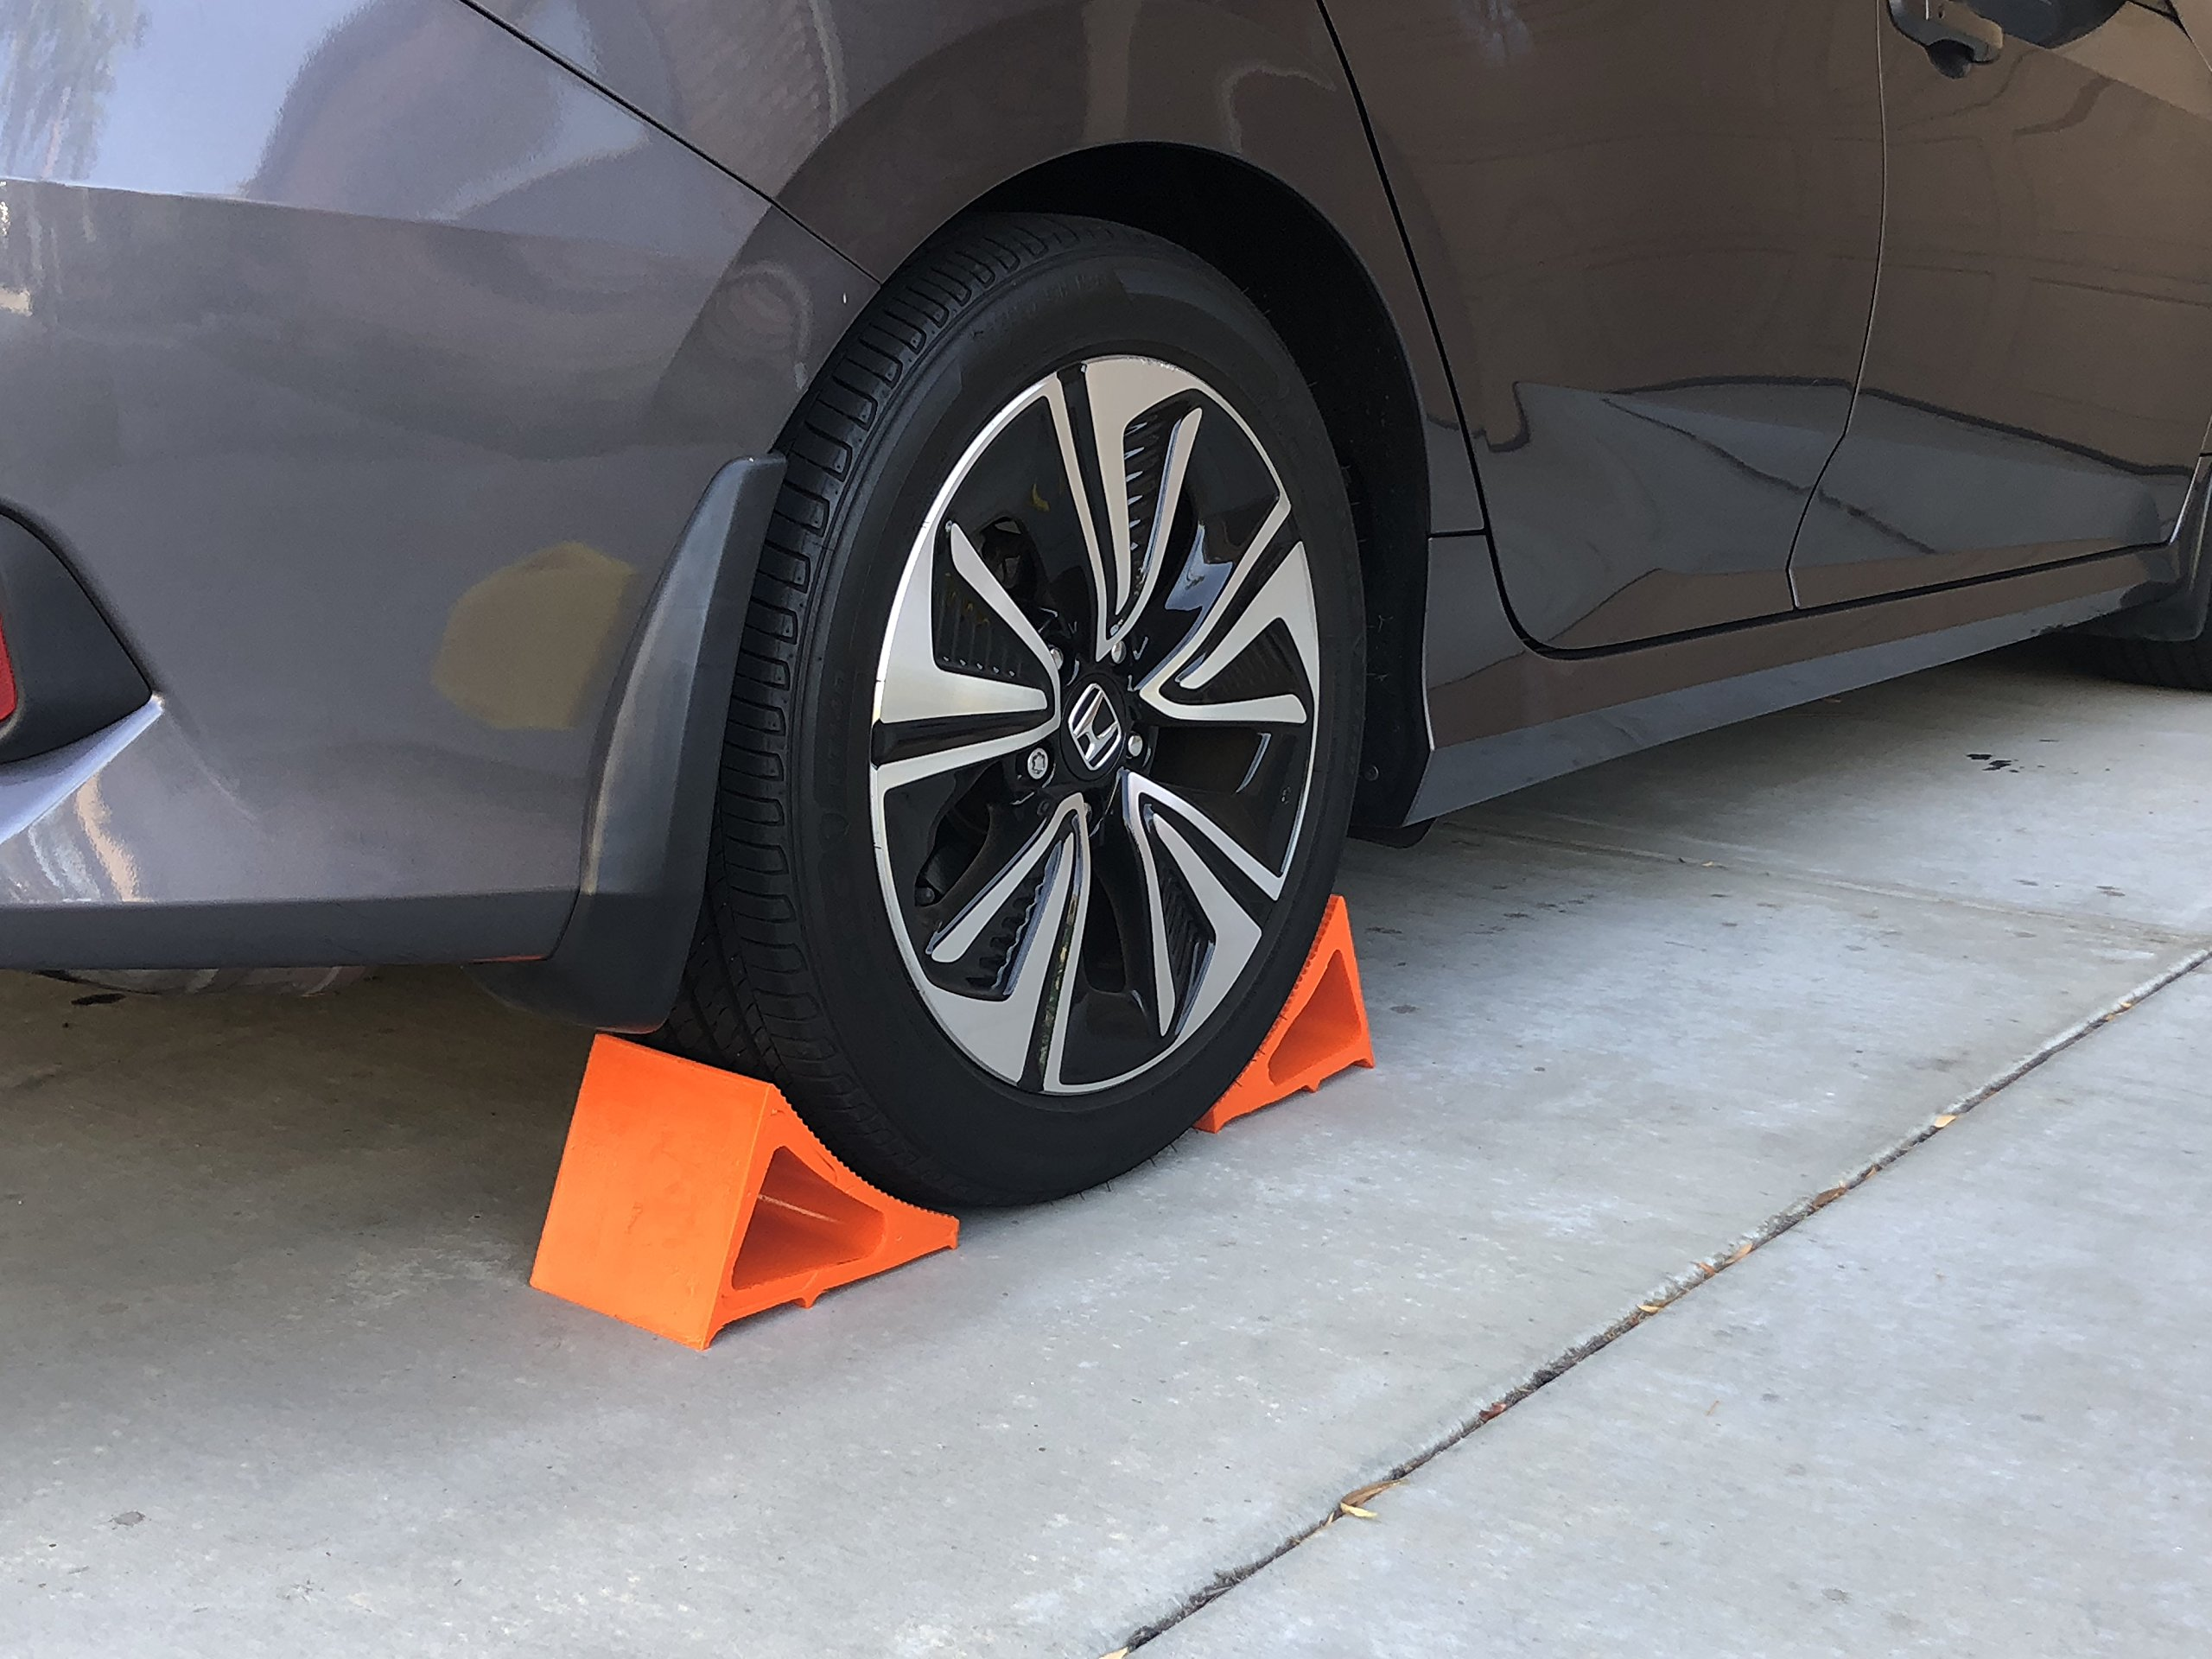 Elasco Wheel Chock, Weatherproof, Outdoor Grade, Polyurethane better than Rubber or Plastic, Keeps Your Trailer or RV In Place, 5 Year Warranty (2 Pack, Orange) by Elasco Products (Image #8)